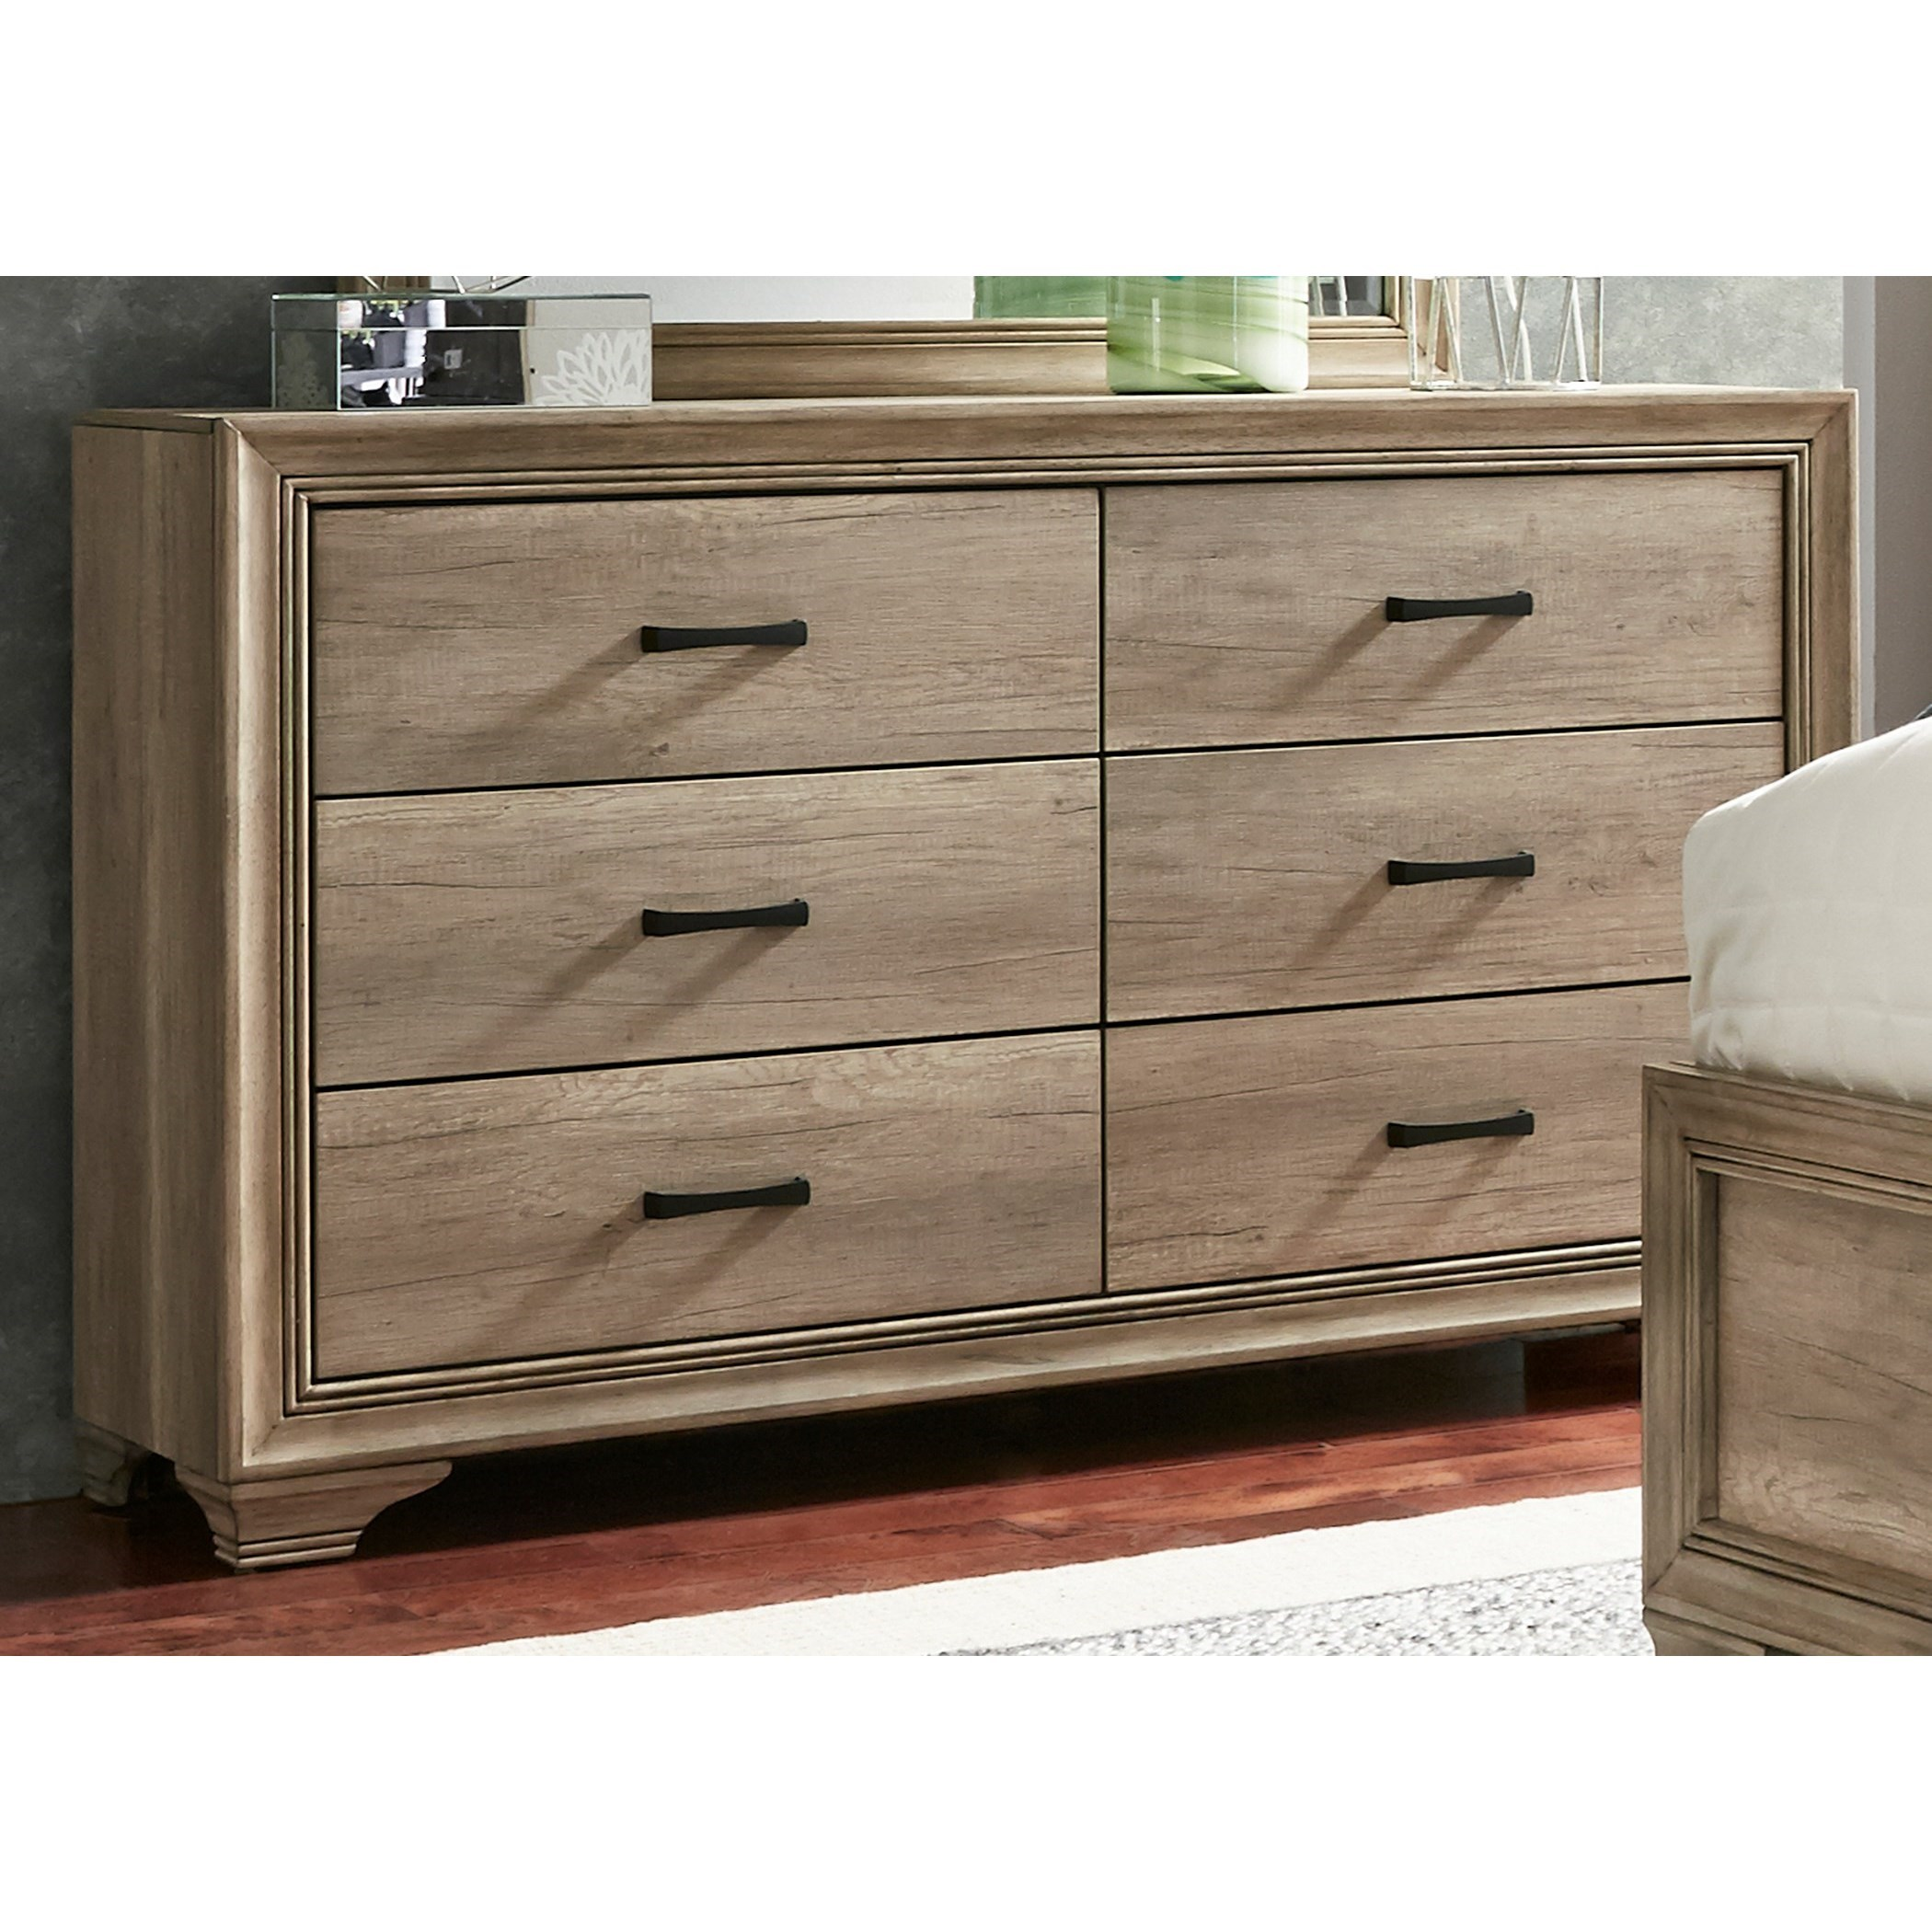 pdp furniture lane reviews drawer dobson birch dresser